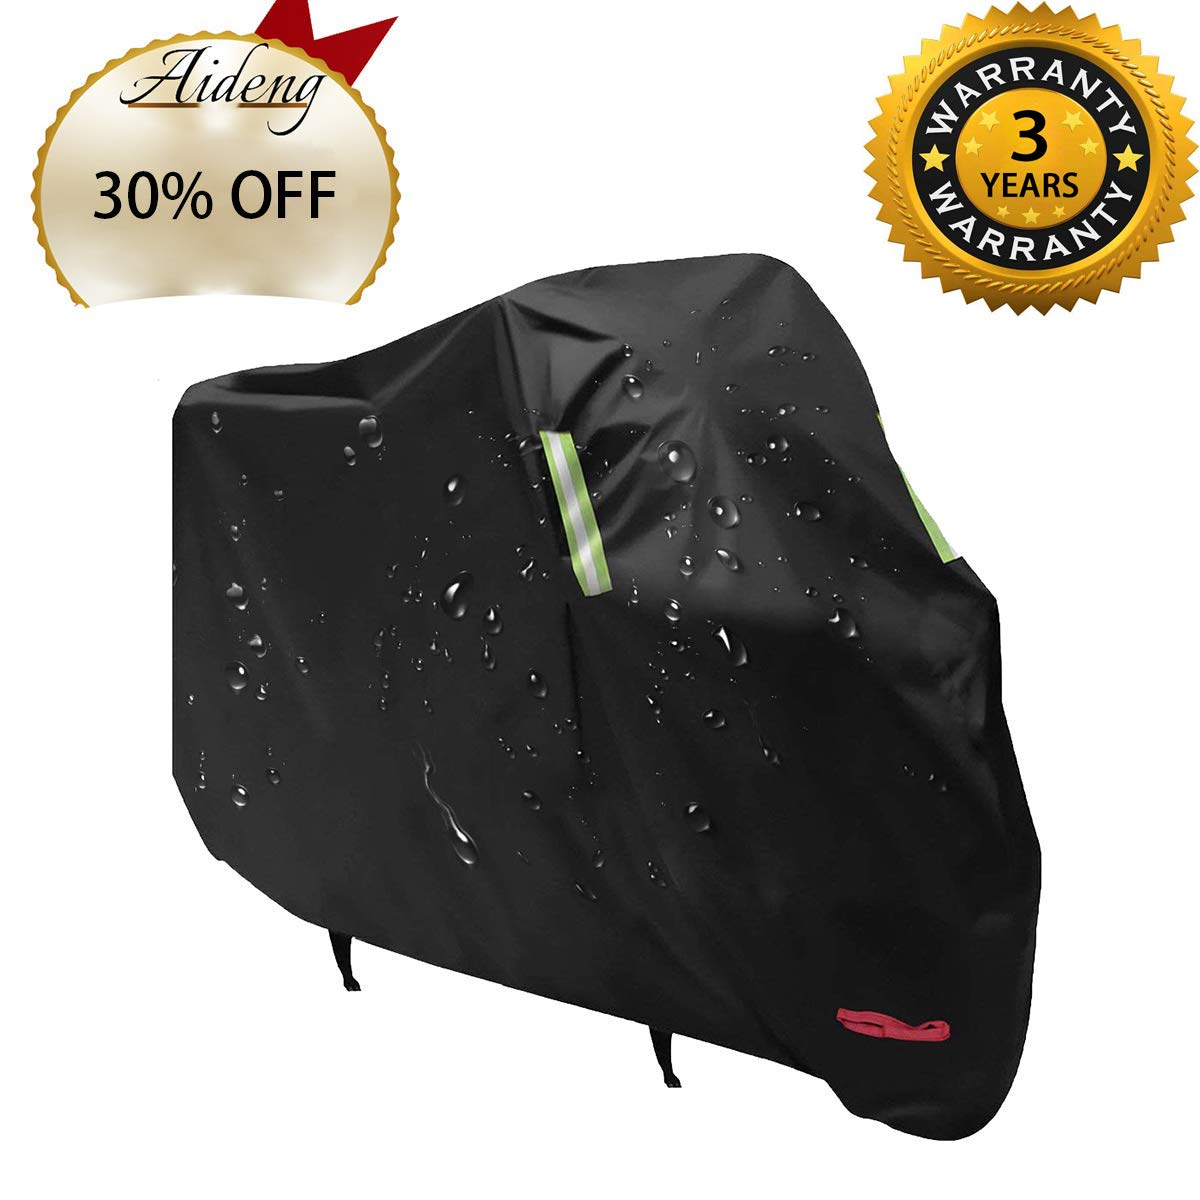 Honda Yamaha and More Suzuki 210 0D Oxford All Season Super Waterproof Motorcycle Snow Cover Breathable XXL 104 Inches Bicycles Shelter Dust Cover for Harley Triumph Aideng Motorcycle Rain Cover